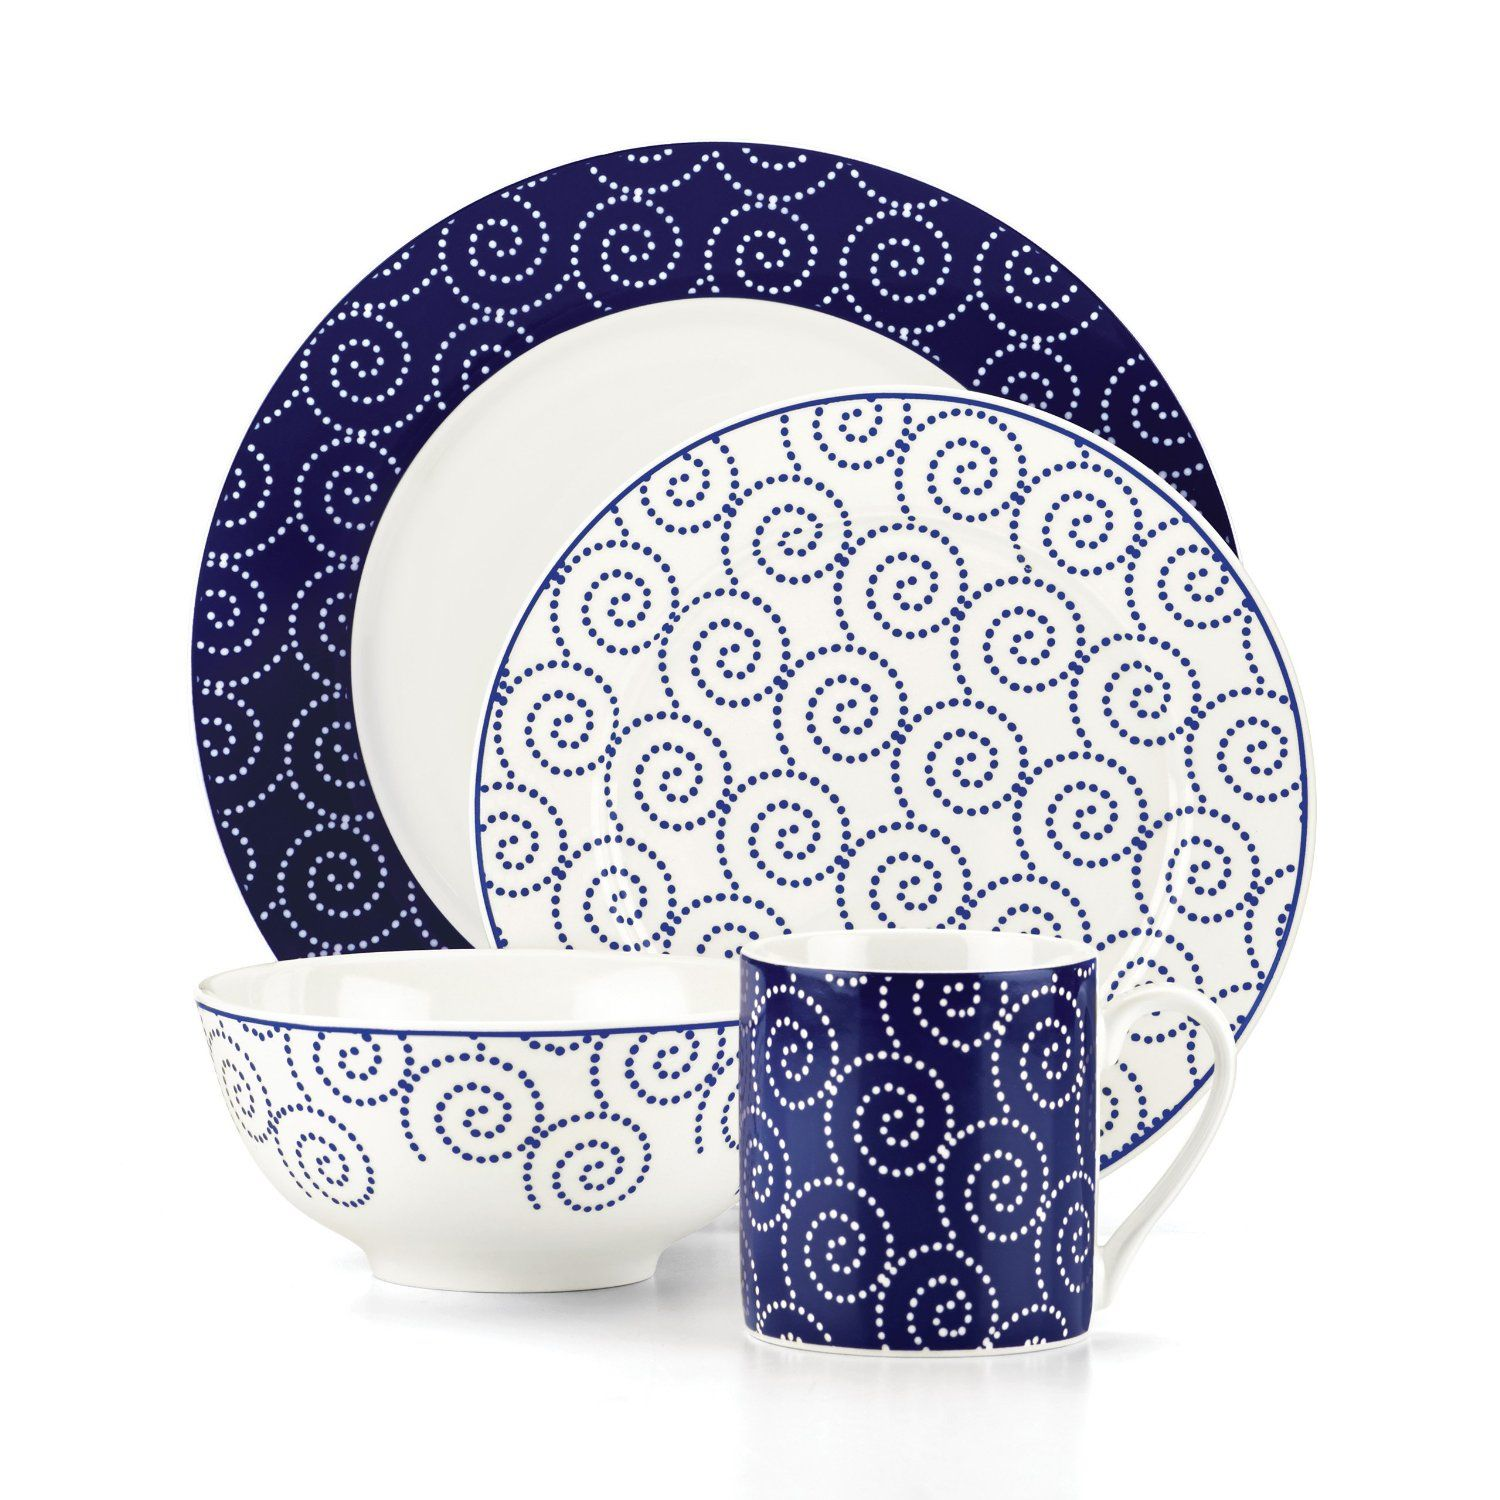 Emeril St Louis Blue 16 Piece Dinnerware Set - Overstock™ Shopping - Great Deals on Emeril Casual Dinnerware  sc 1 st  Pinterest : emeril dinnerware collection - pezcame.com